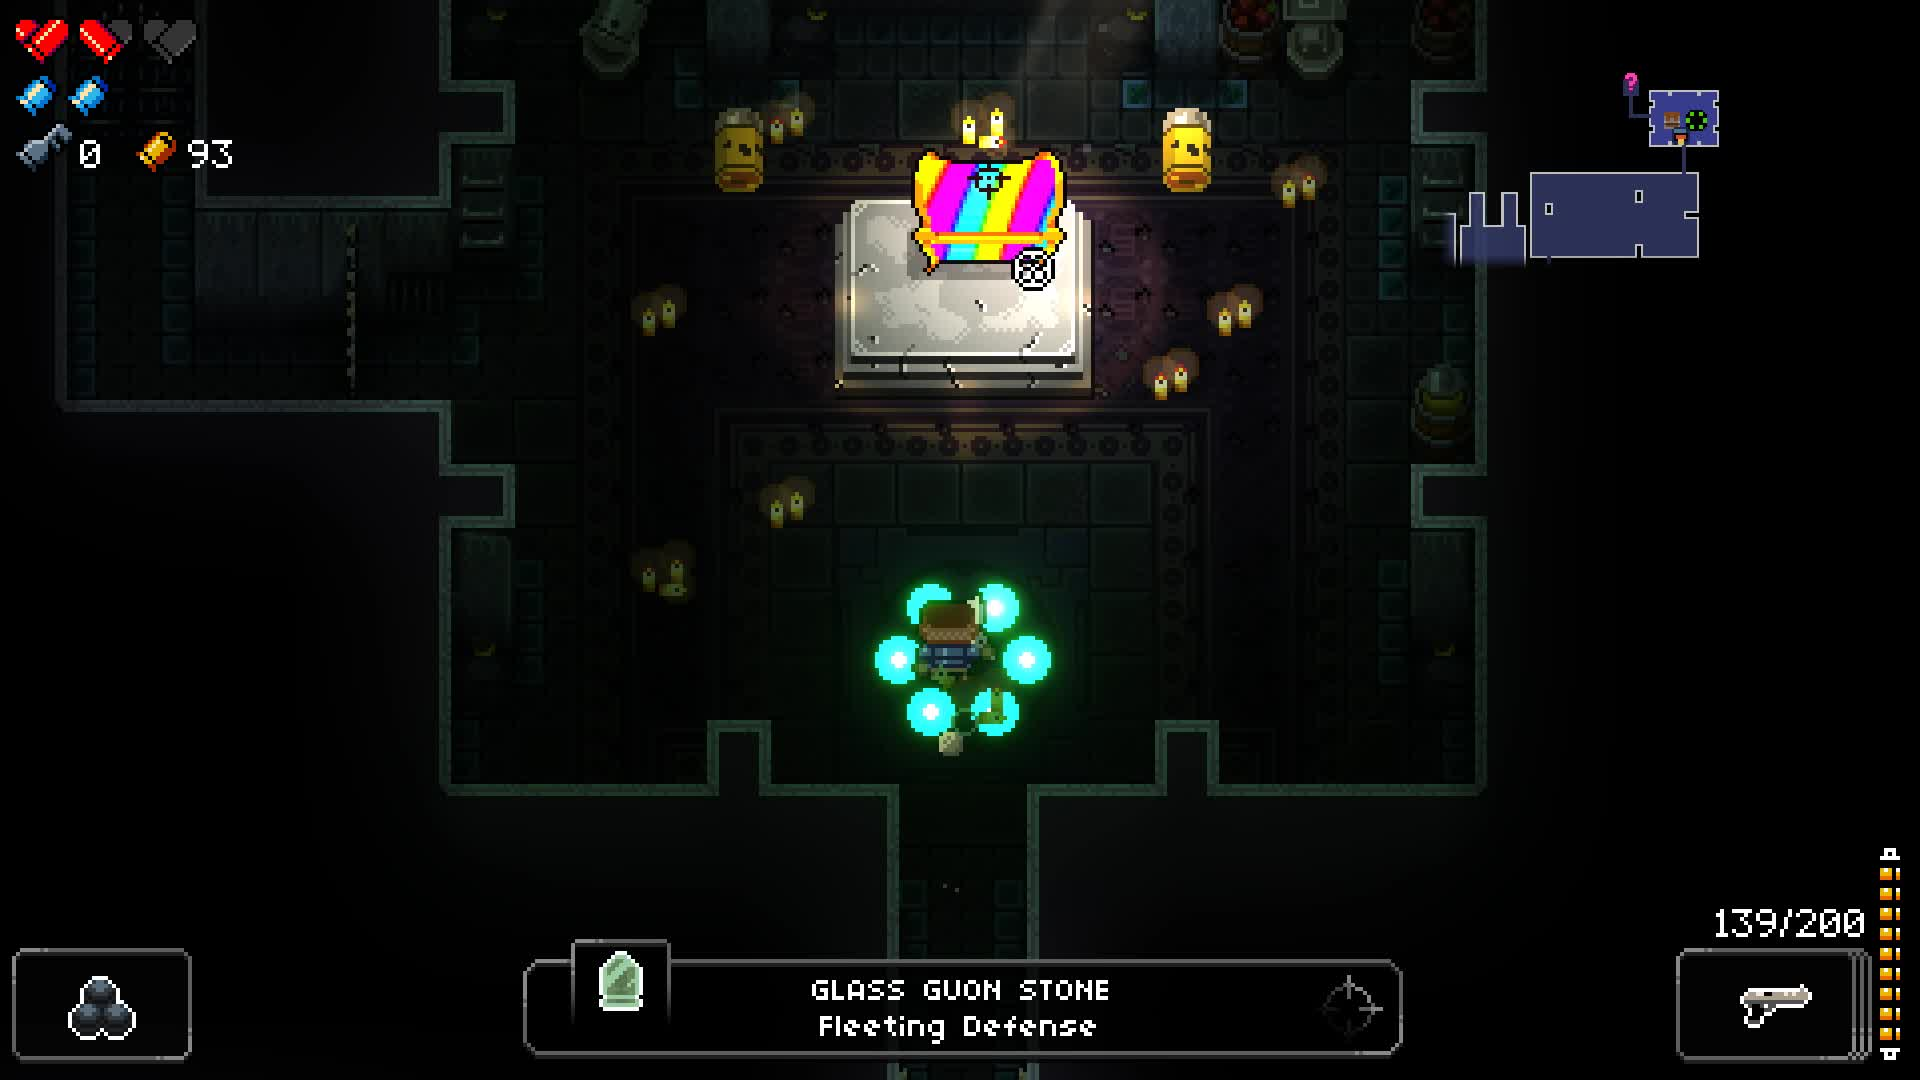 enterthegungeon, vlc-record-2018-07-30-14h09m44s-Enter the Gungeon 2018.07.30 - 14.08.52.04.DVR.mp4- GIFs